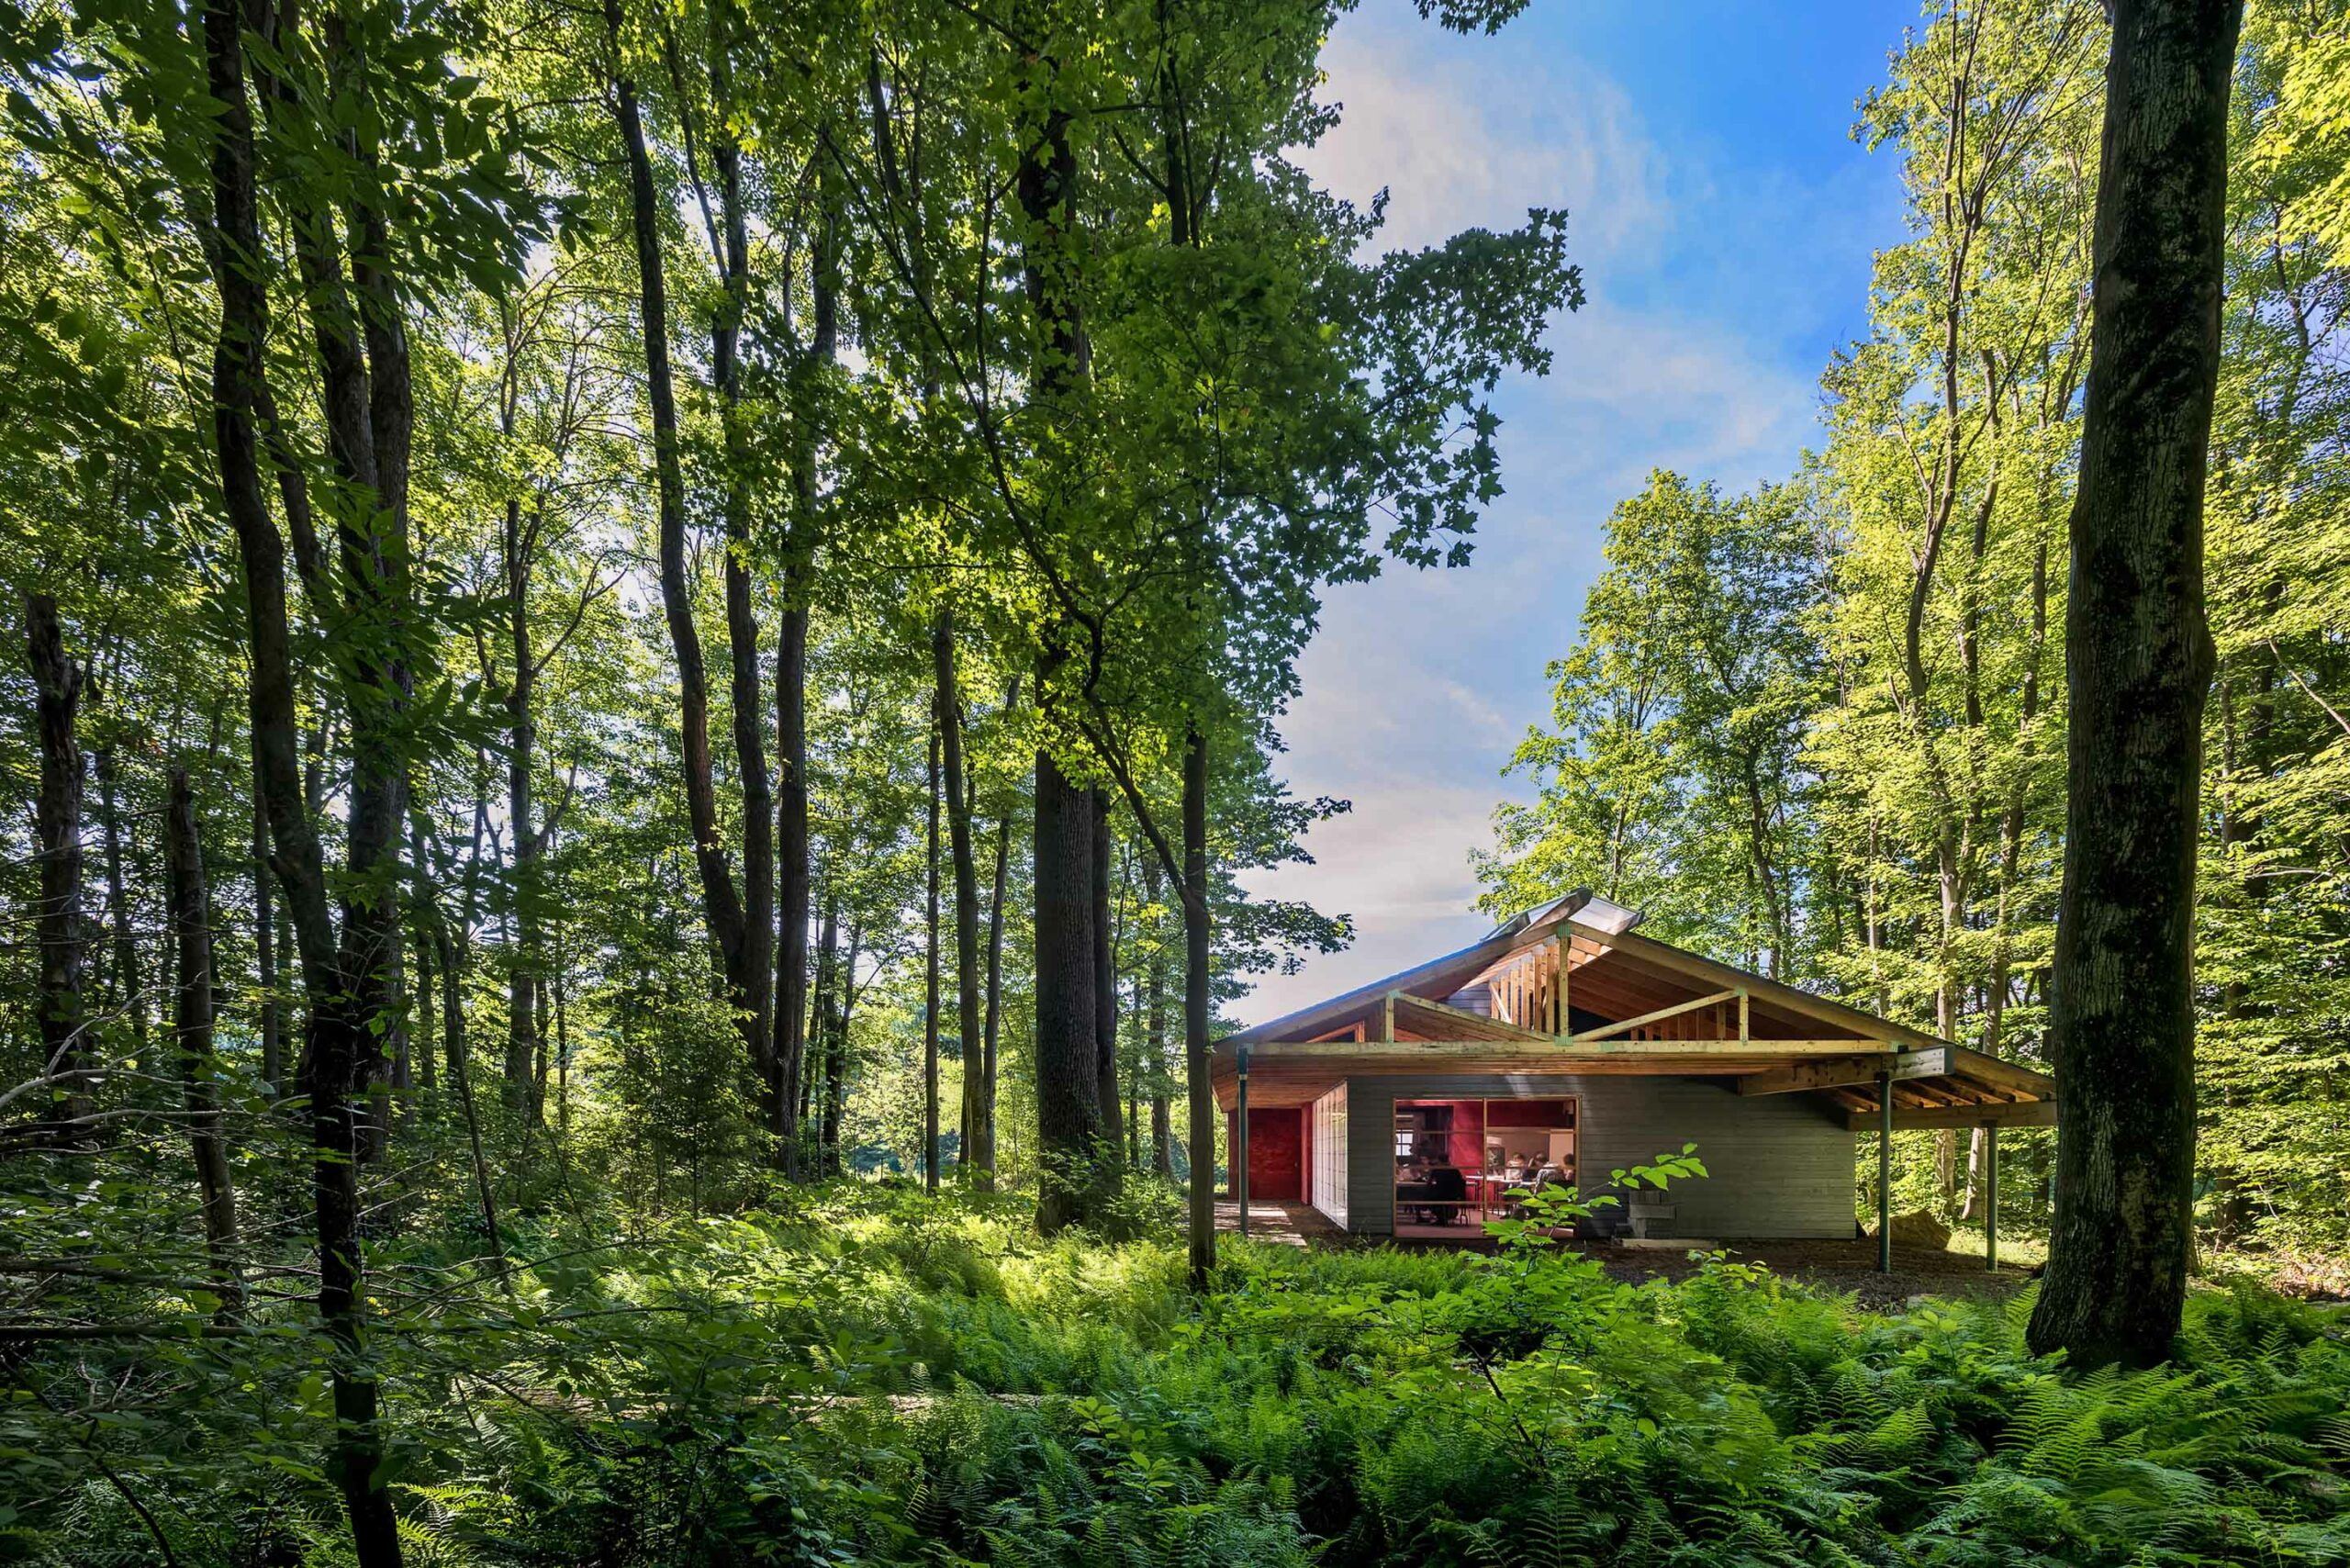 Frank Lloyd Wright's Legacy Evolved With High Meadow at Fallingwater